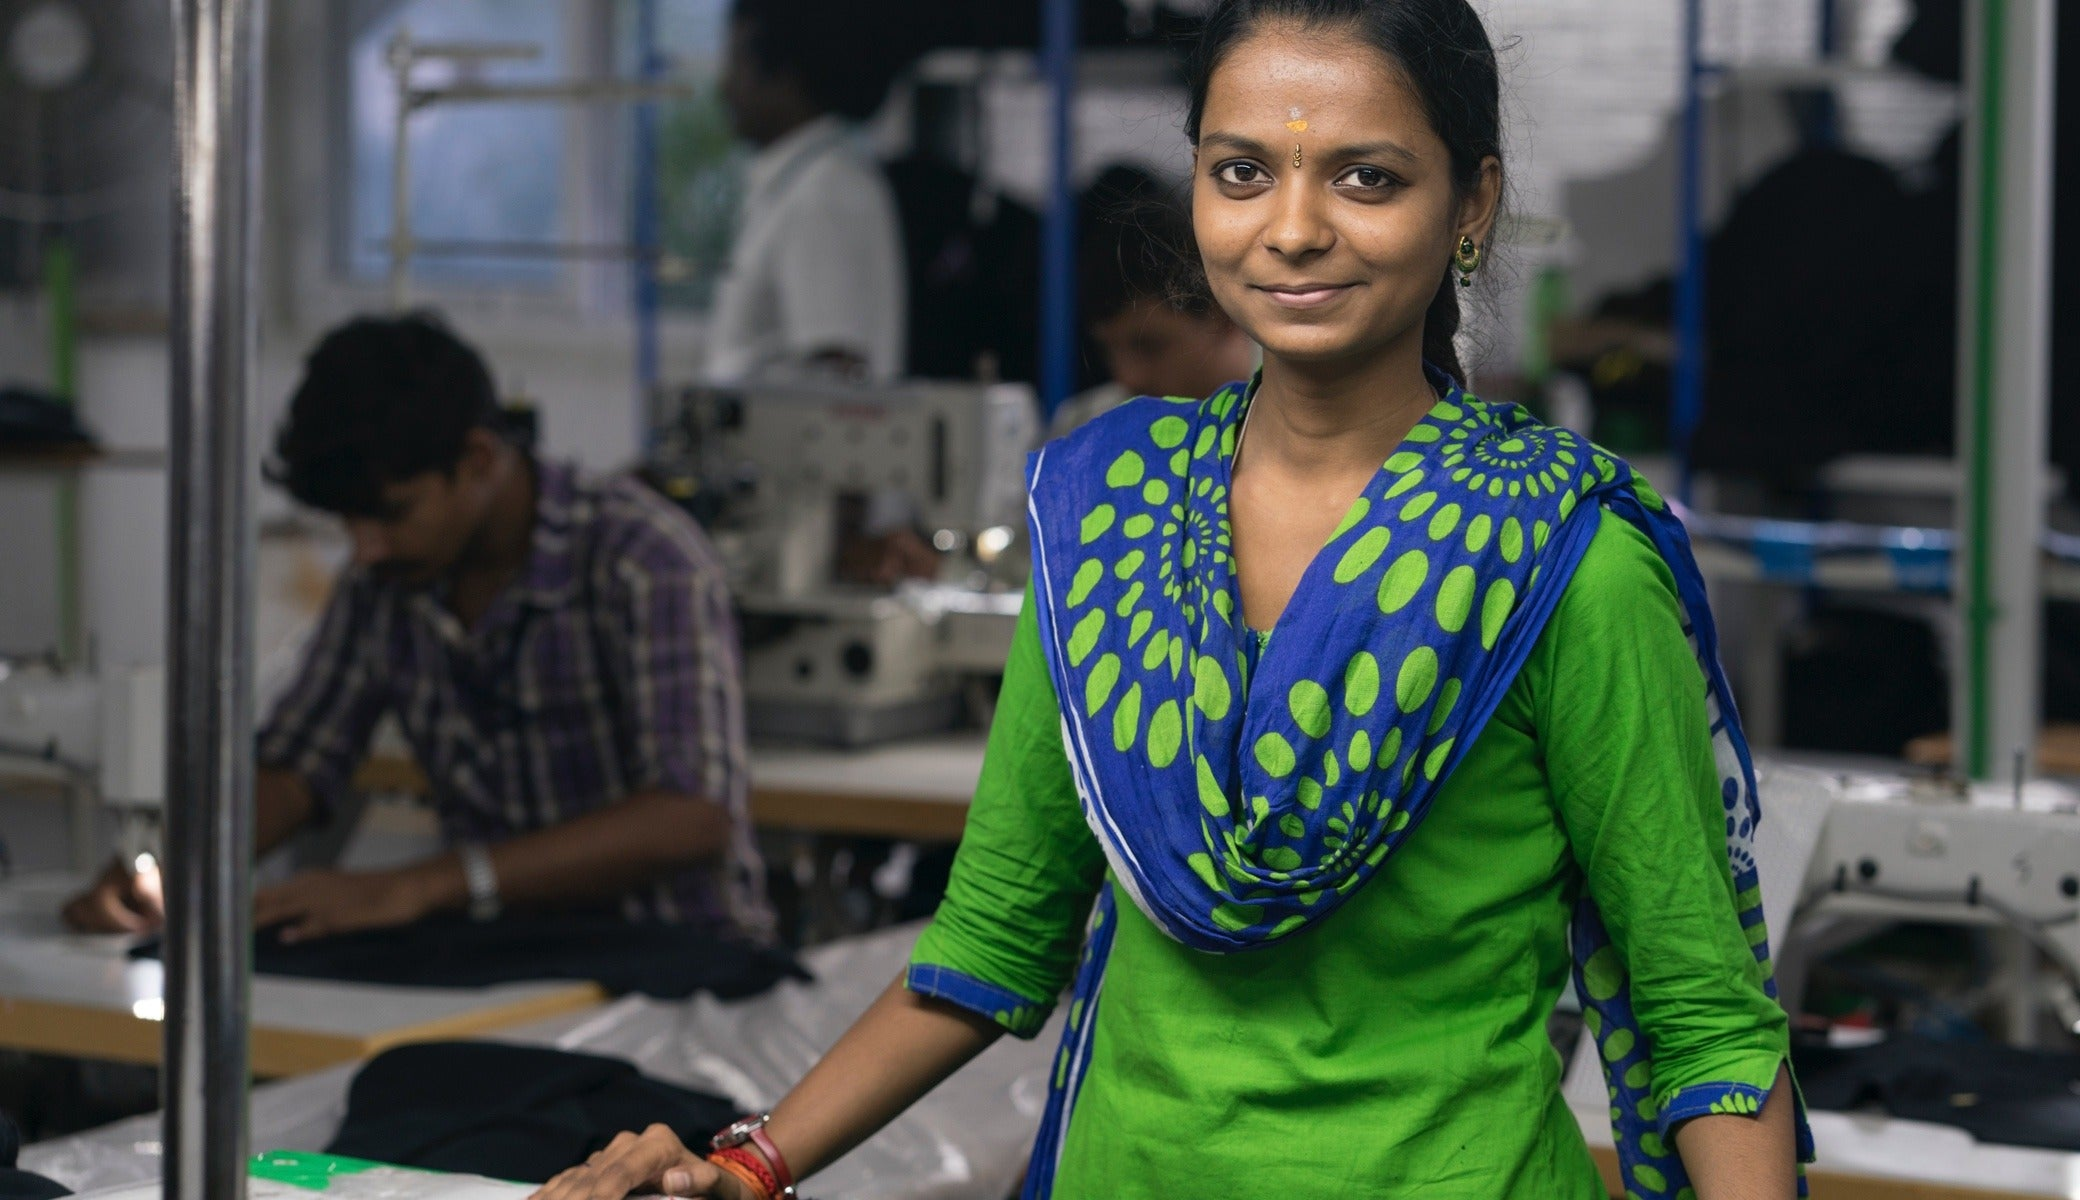 Saravana Priya started working at this Fair Trade Certified™  factory in late 2017.